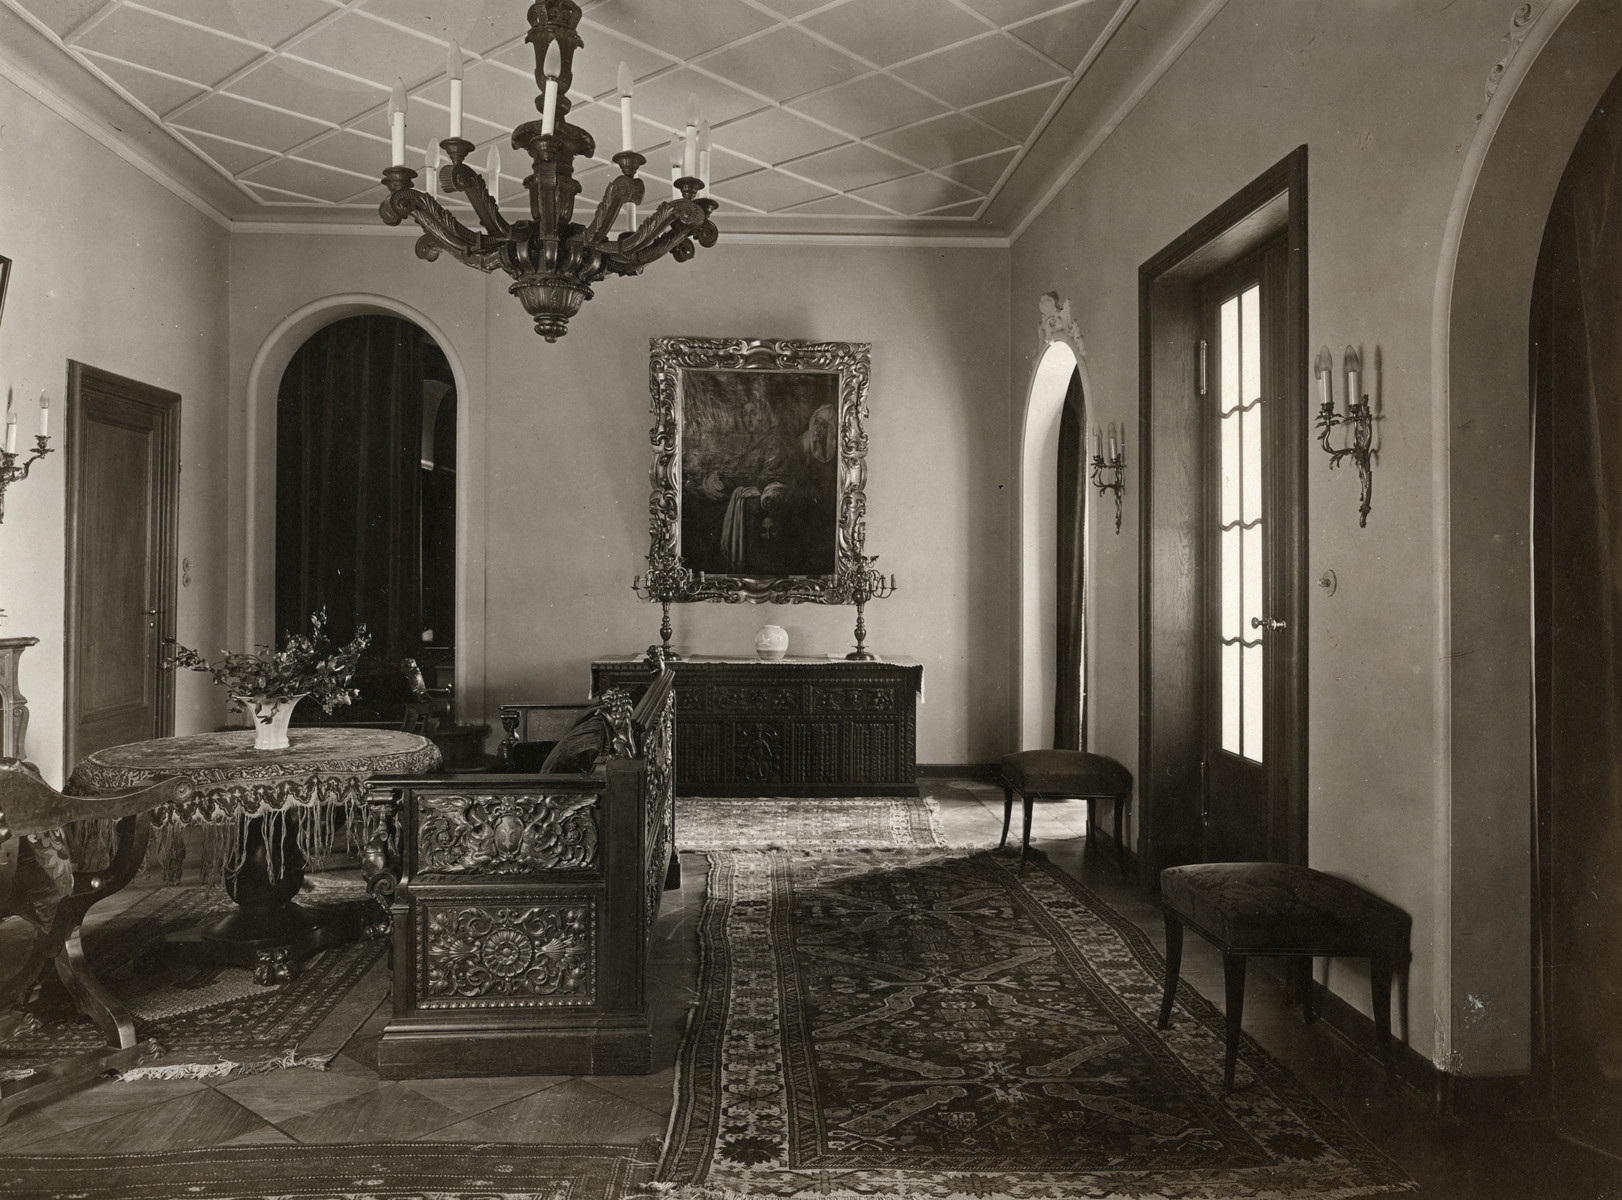 Interior view of the Lewinnek's home in Berlin prior to the Nazi take-over.